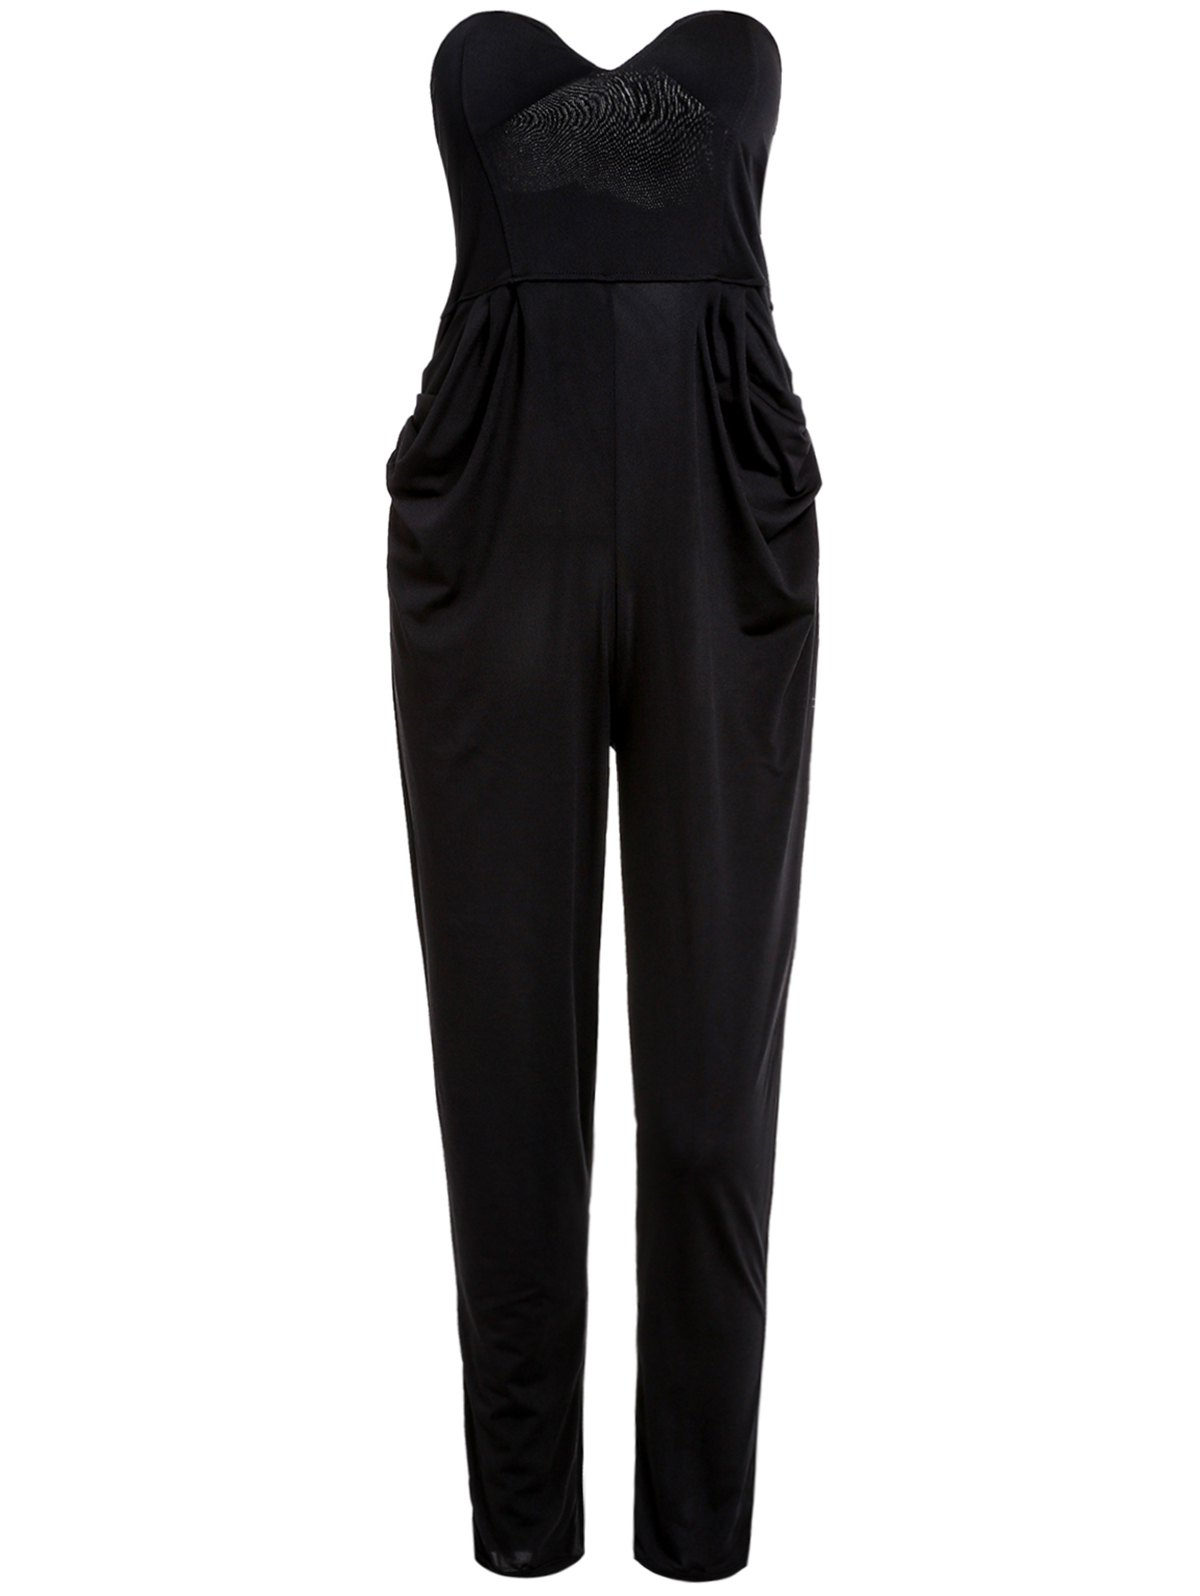 Stylish Strapless Sleeveless Solid Color Pocket Design Women's Jumpsuit - BLACK M